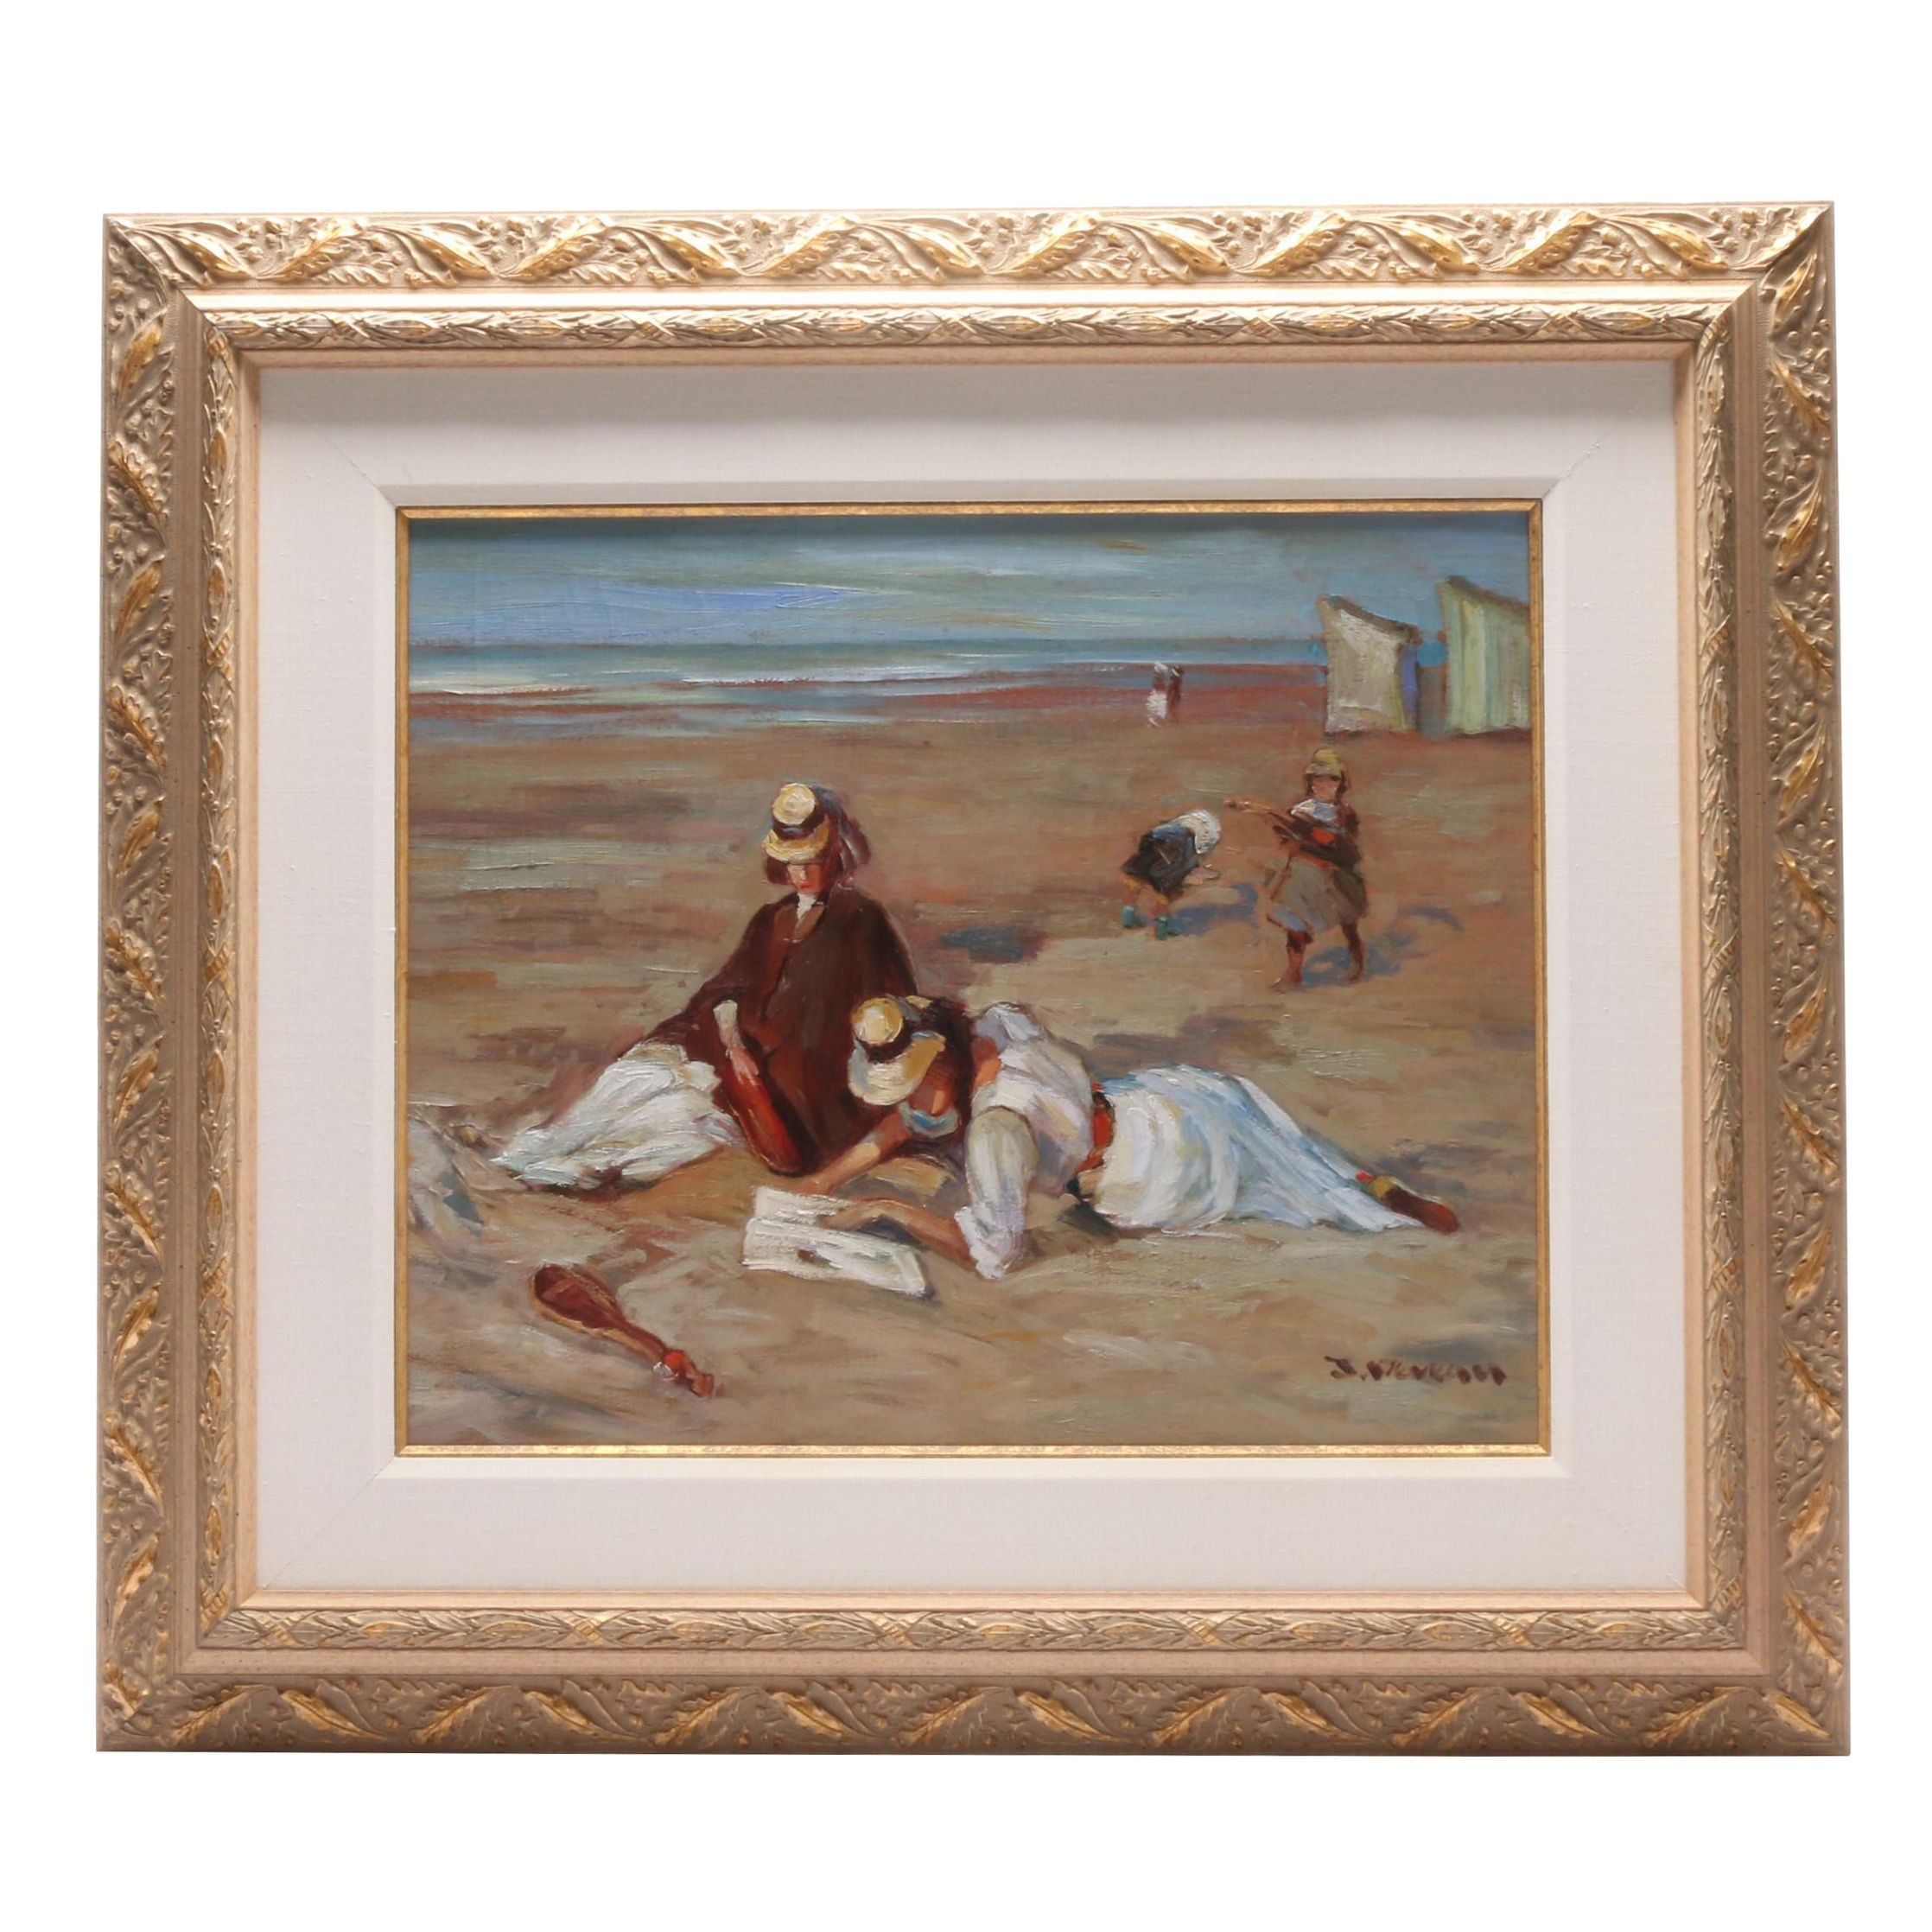 Jacques Deveau Oil Painting of Beach Scene with Figures